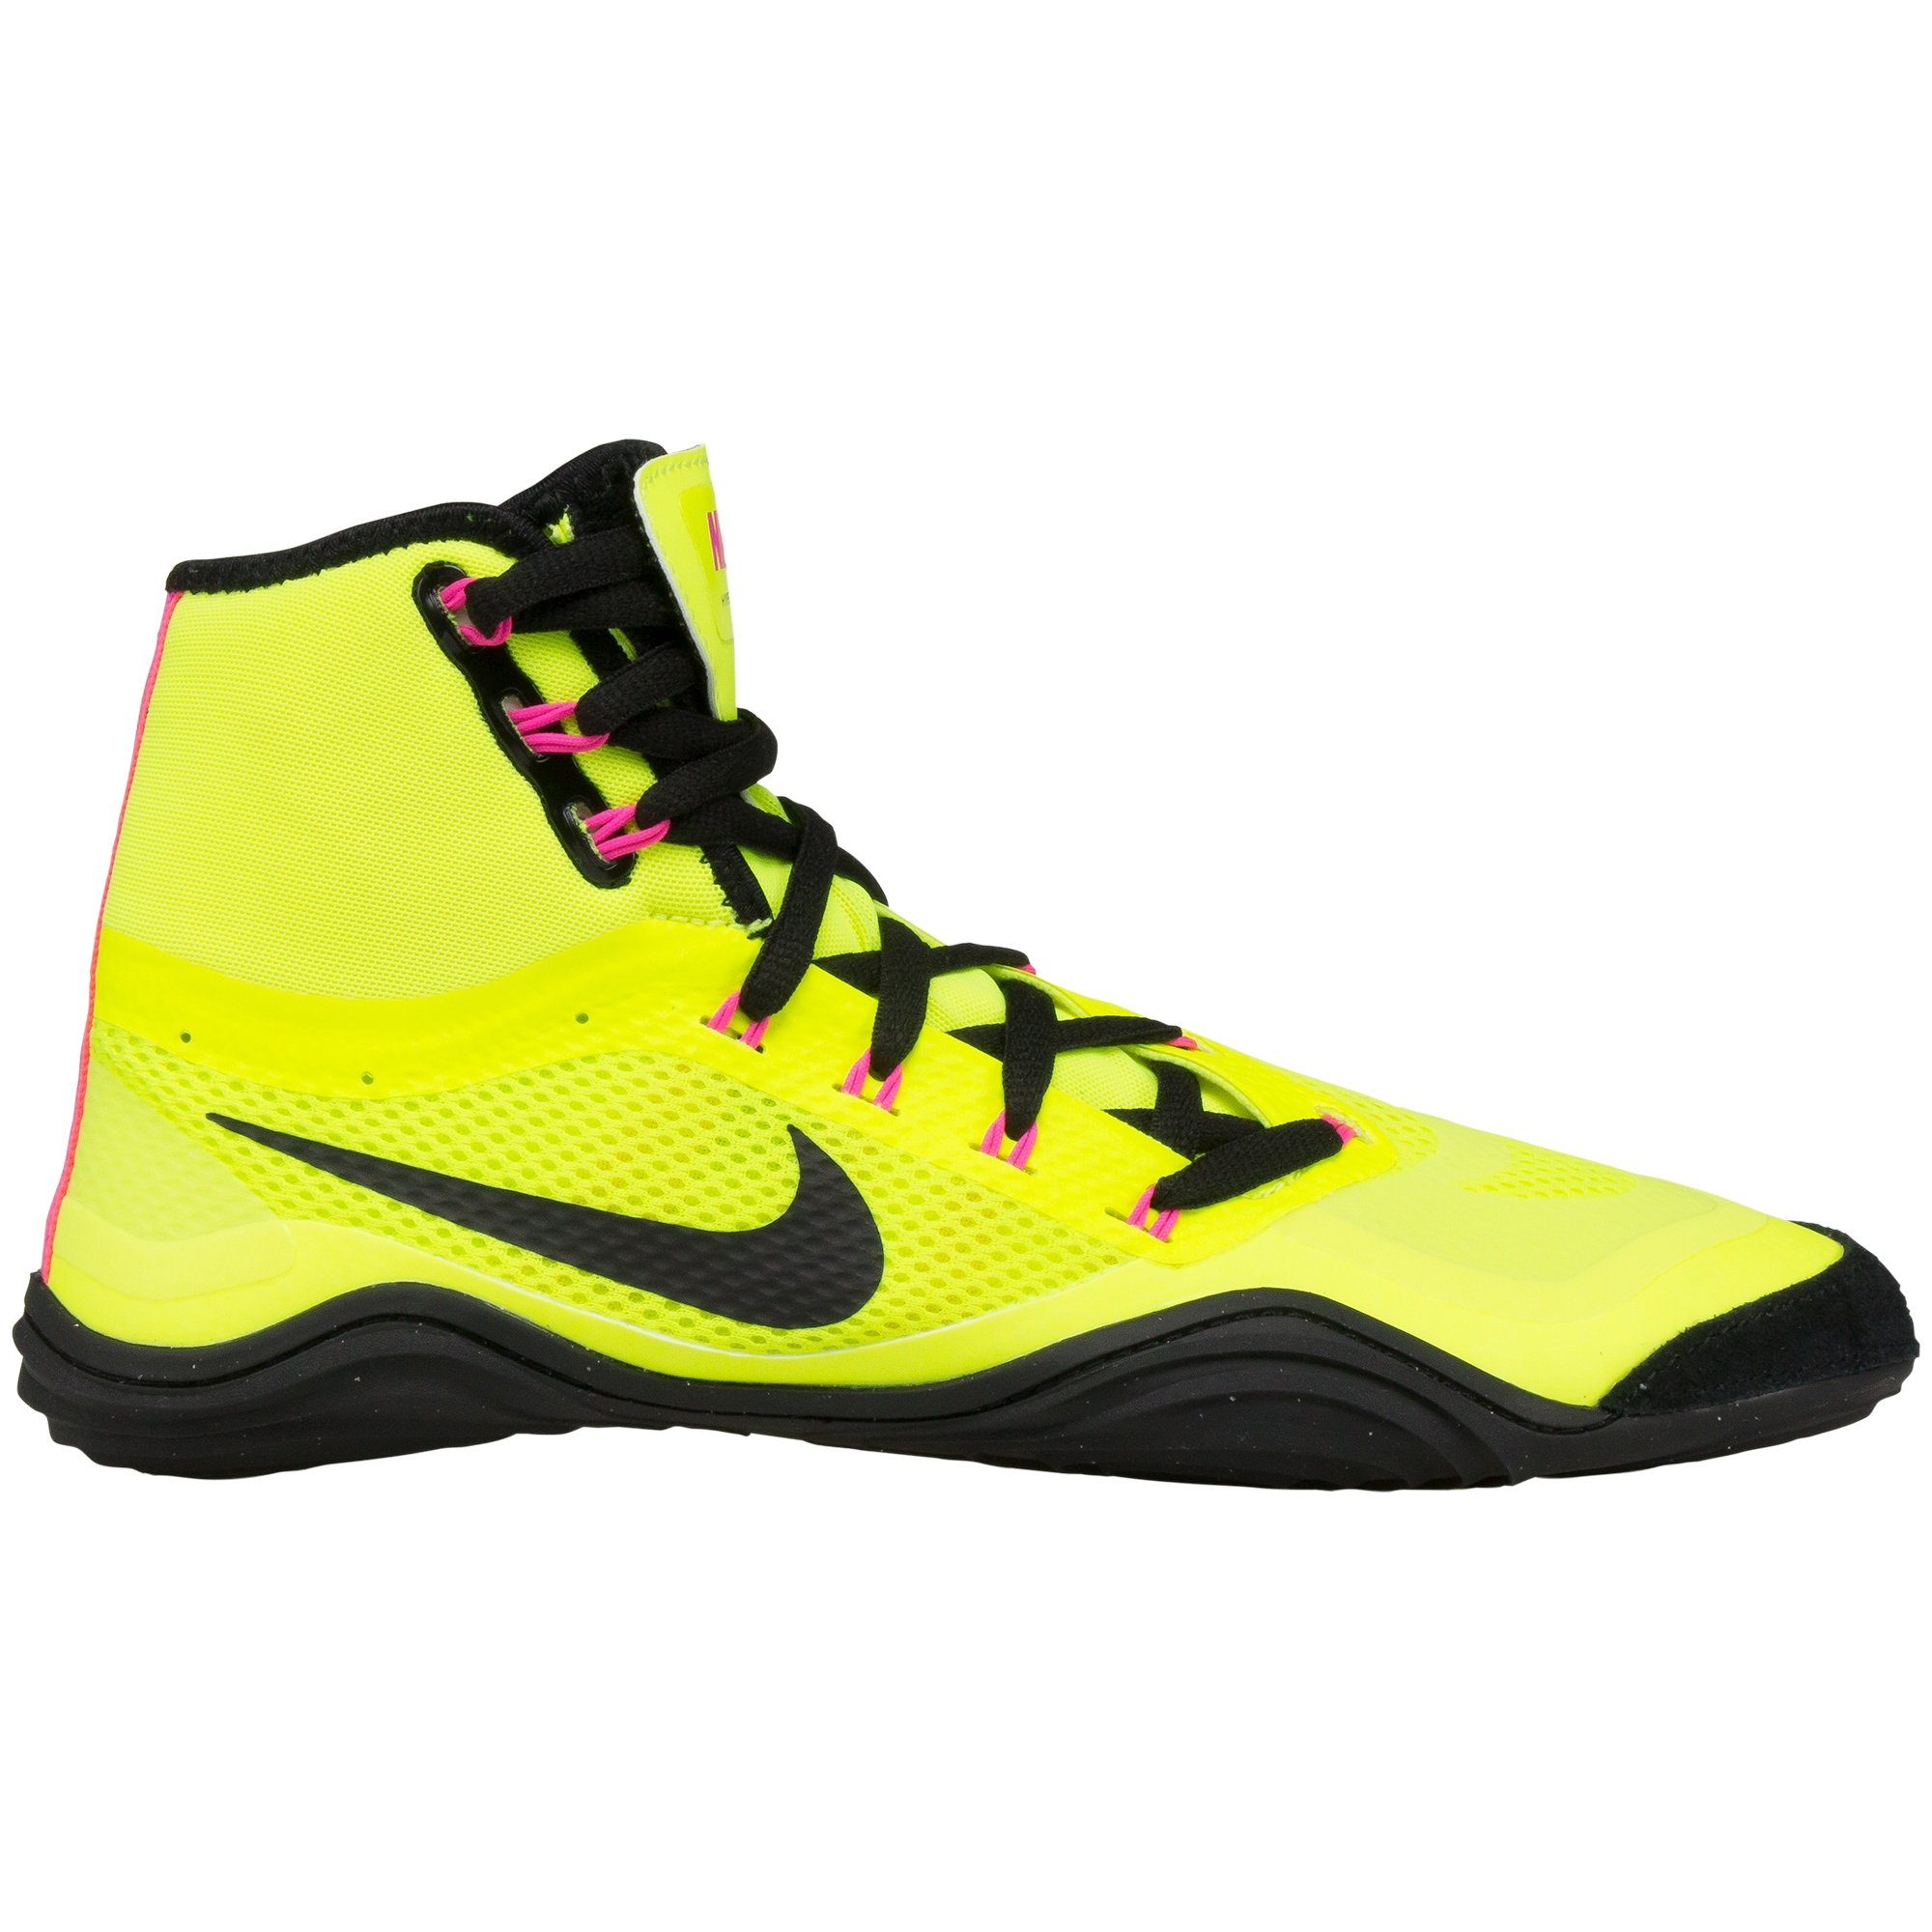 Nike Hypersweep Unlimited